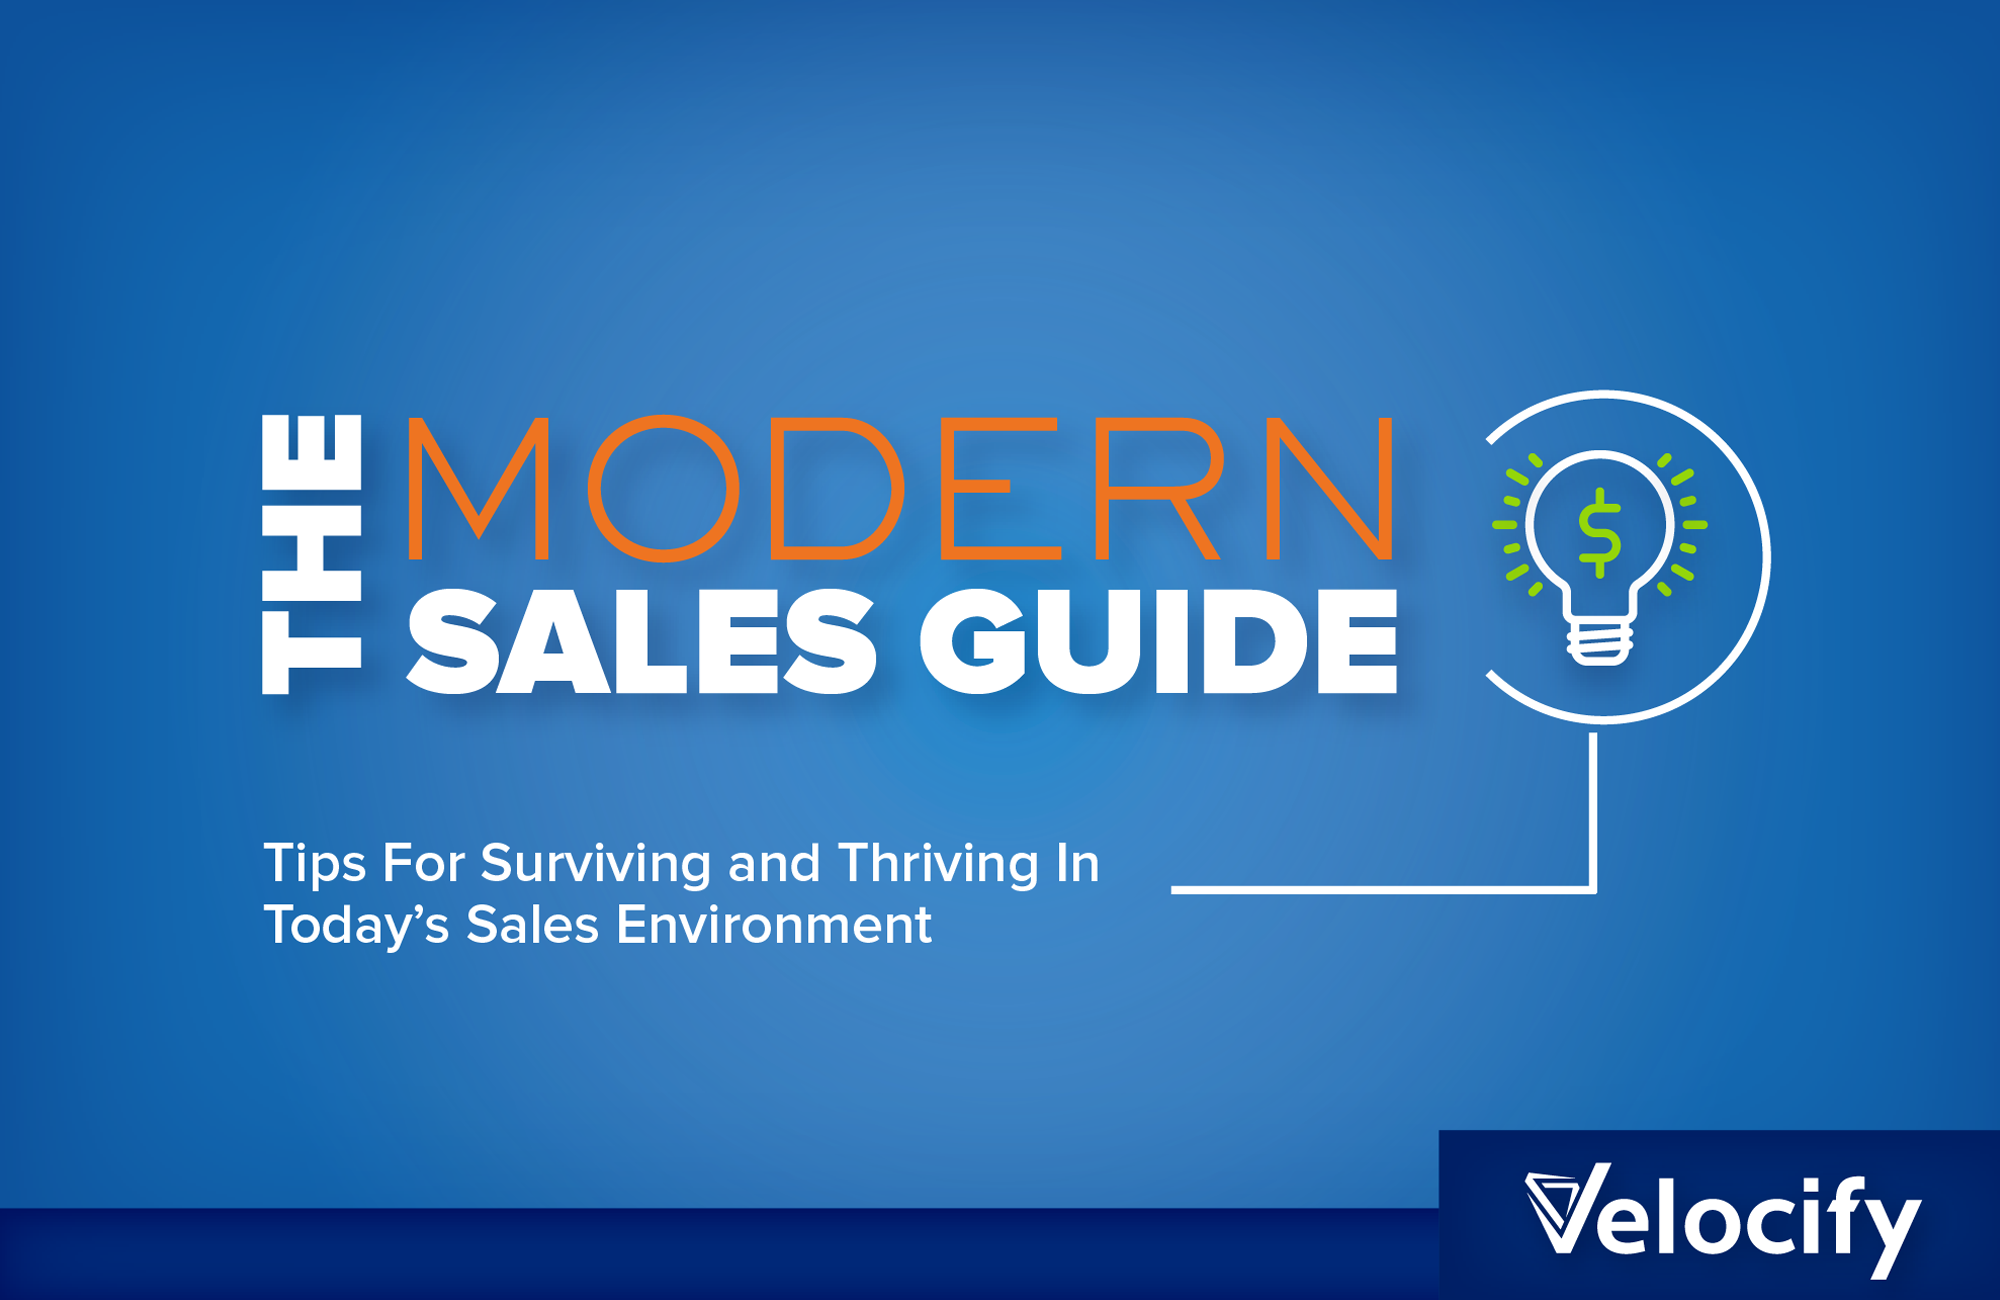 The Modern Sales Guide